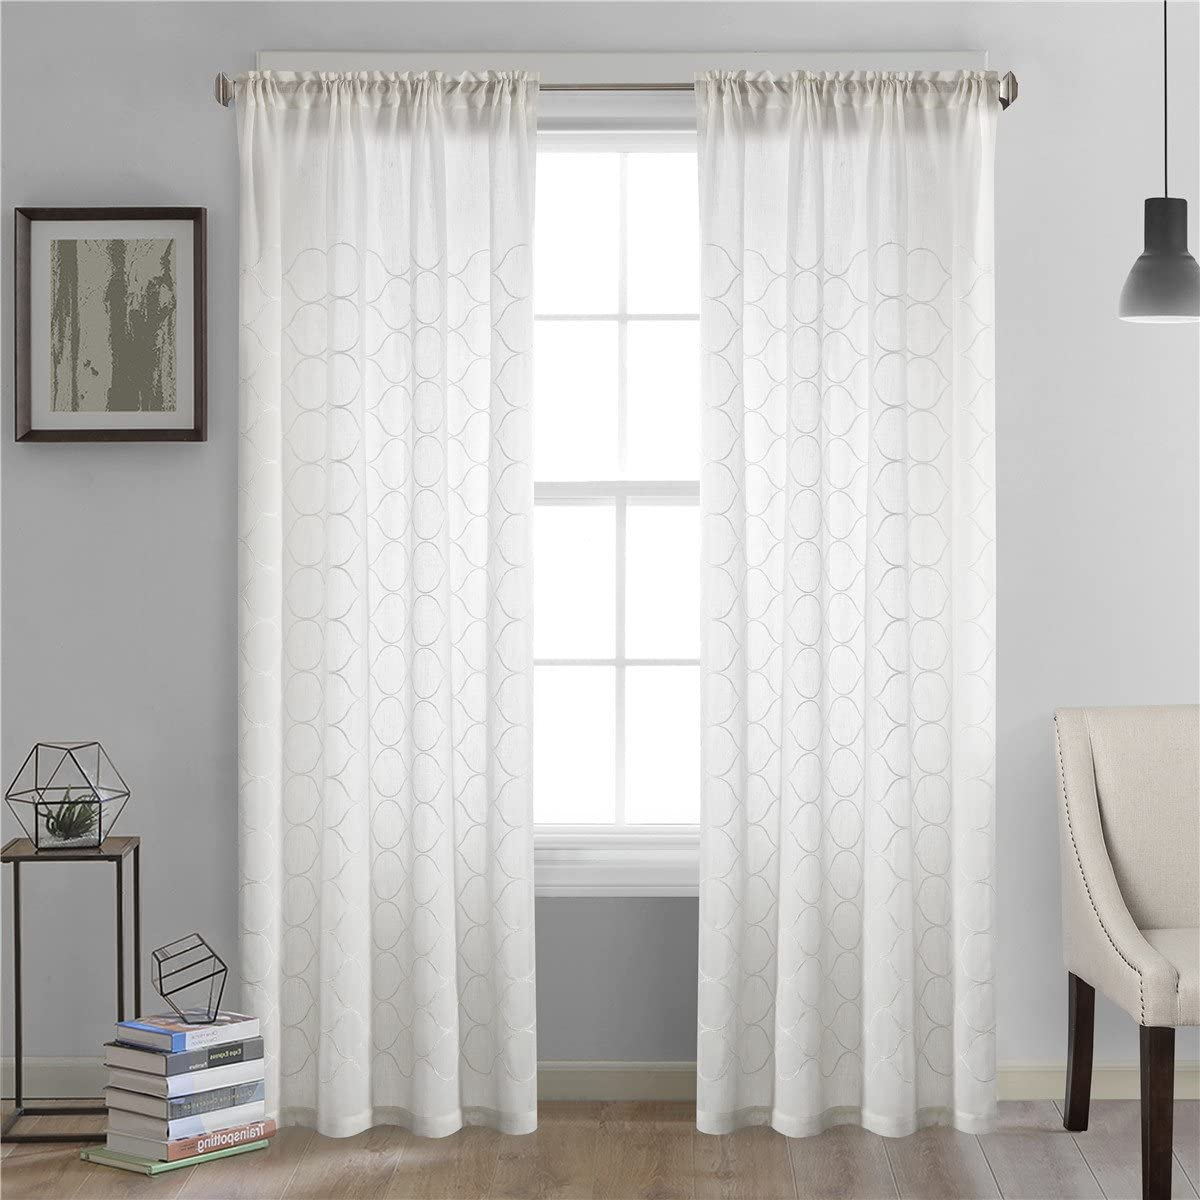 Dreaming Casa White Oval Pattern Window Sheer Curtains for Living Room Rod Pocket Curtain Drapes for Bedroom 100 W x 102 L Set of 2 Panels